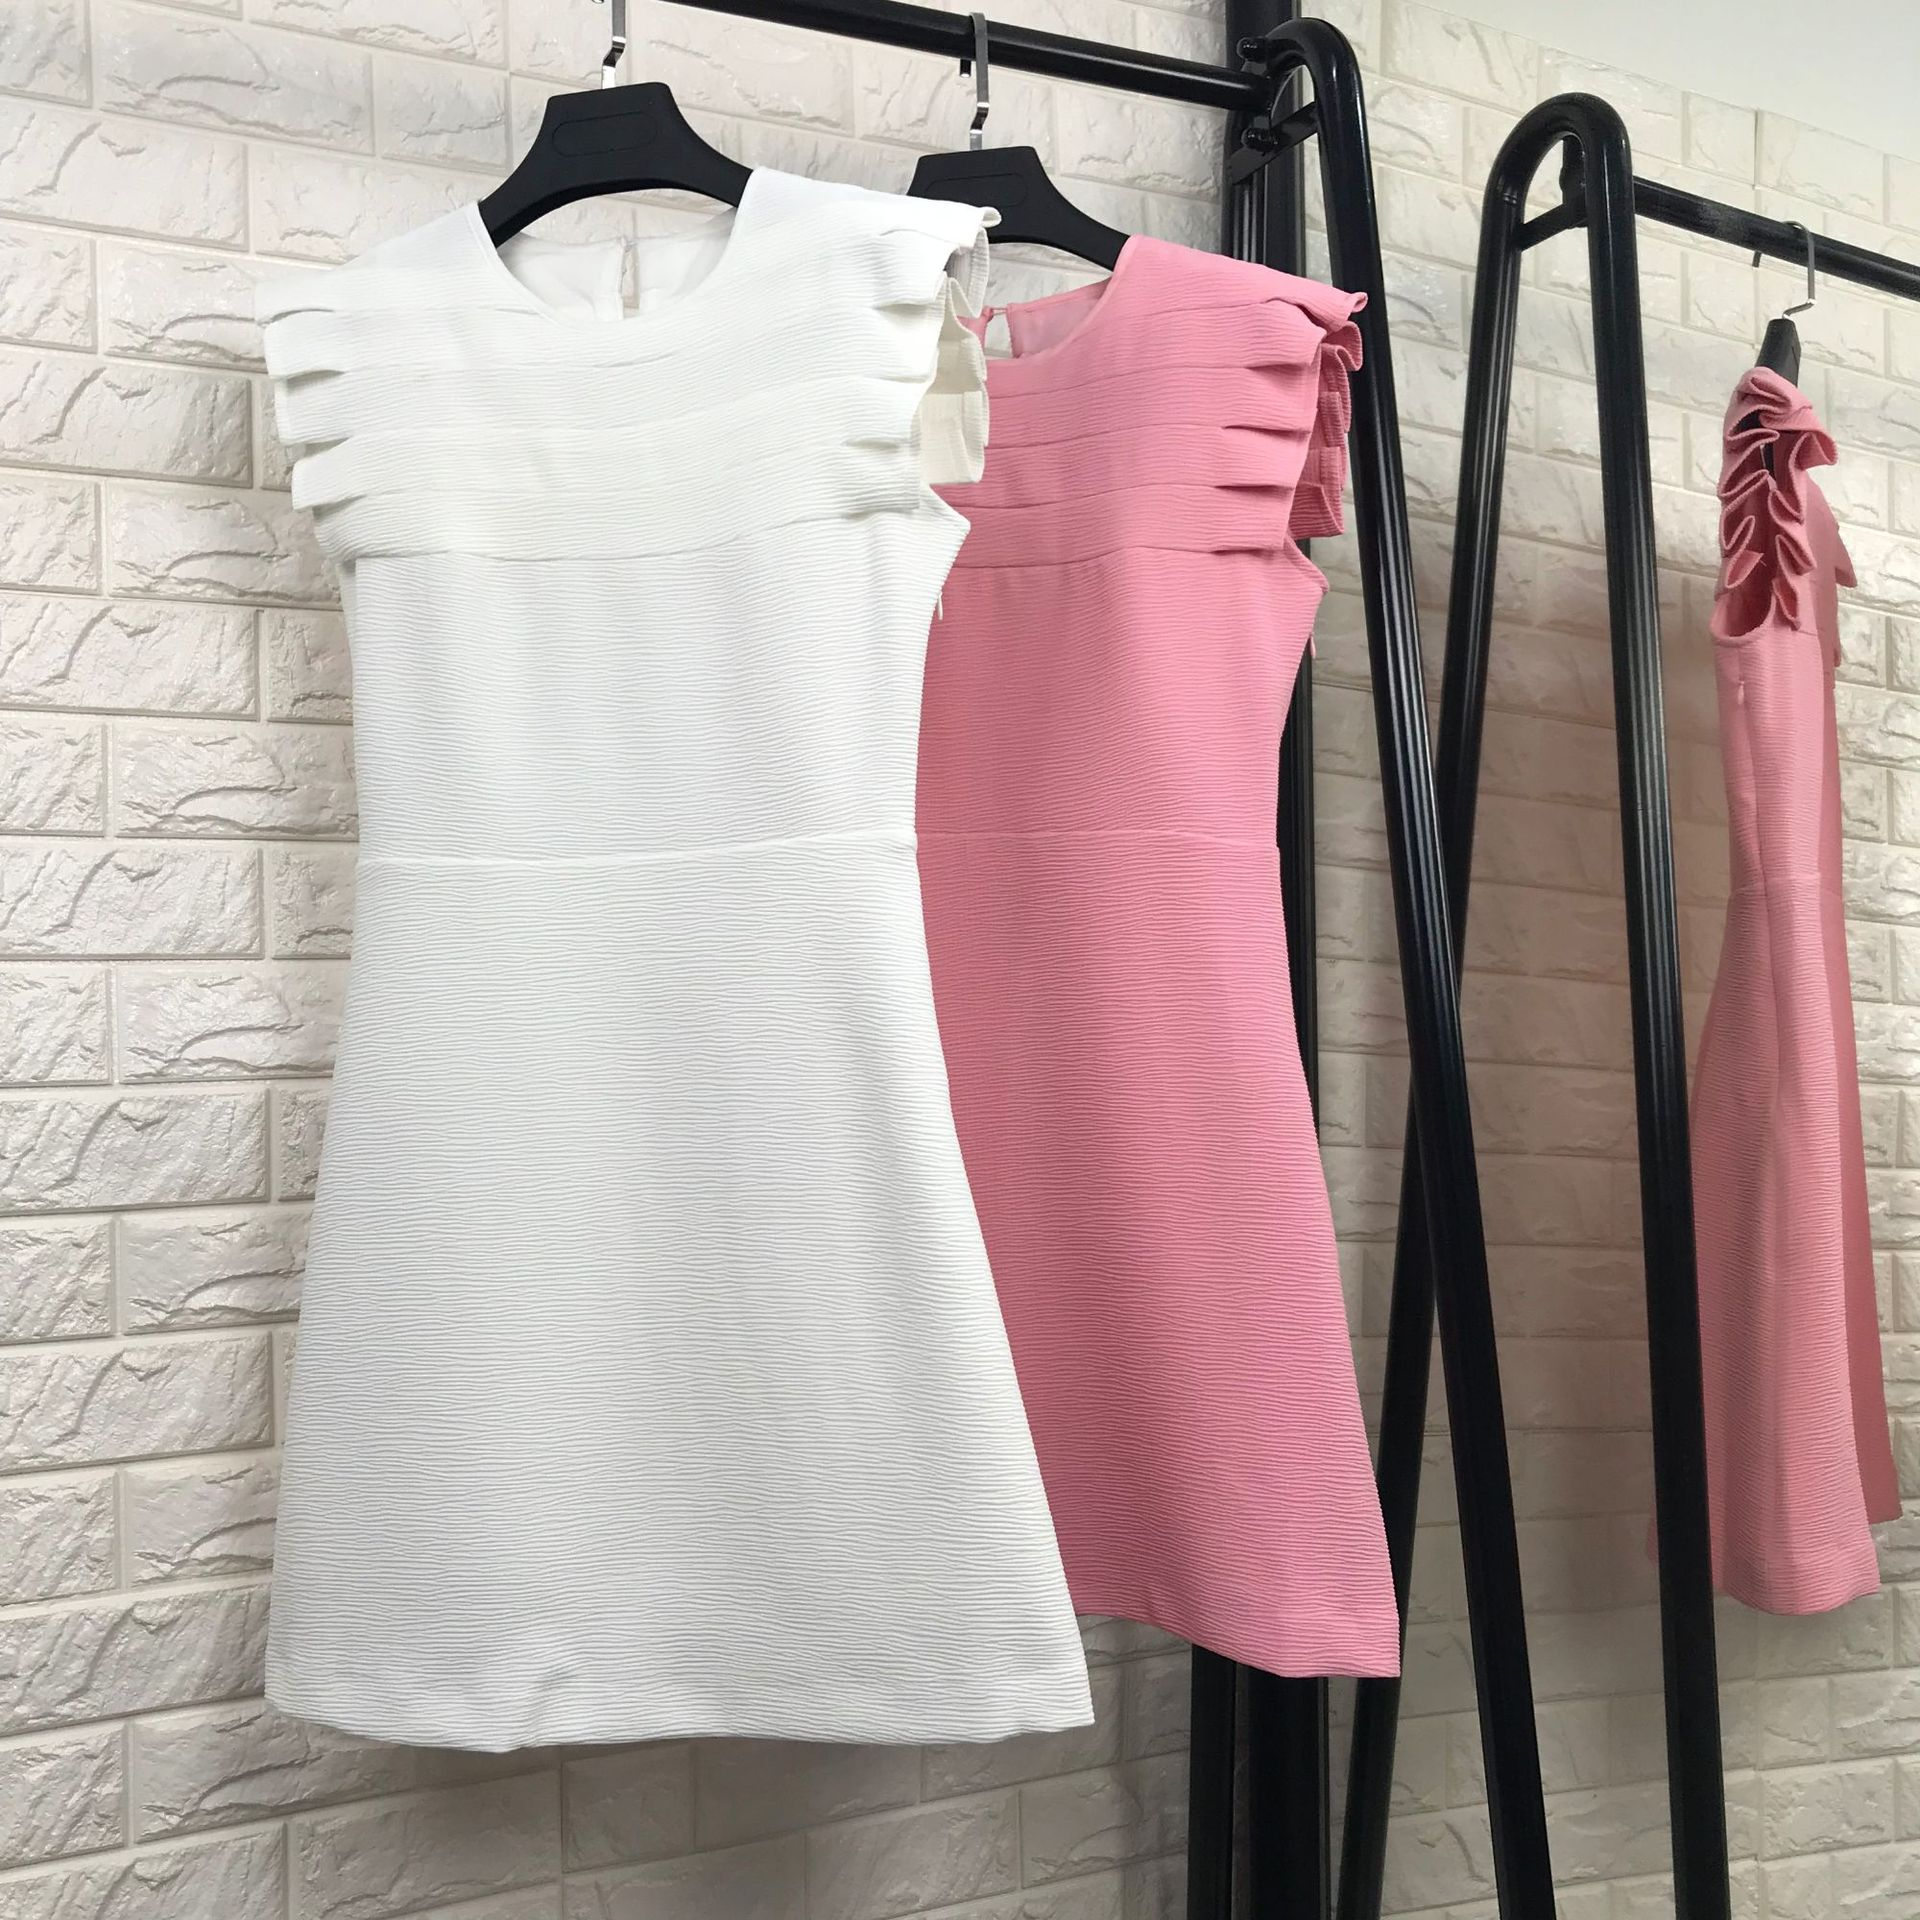 New 2018 spring summer fashion women girls cute ruched sleeve a-line mini white dress solid color brief dresses pink